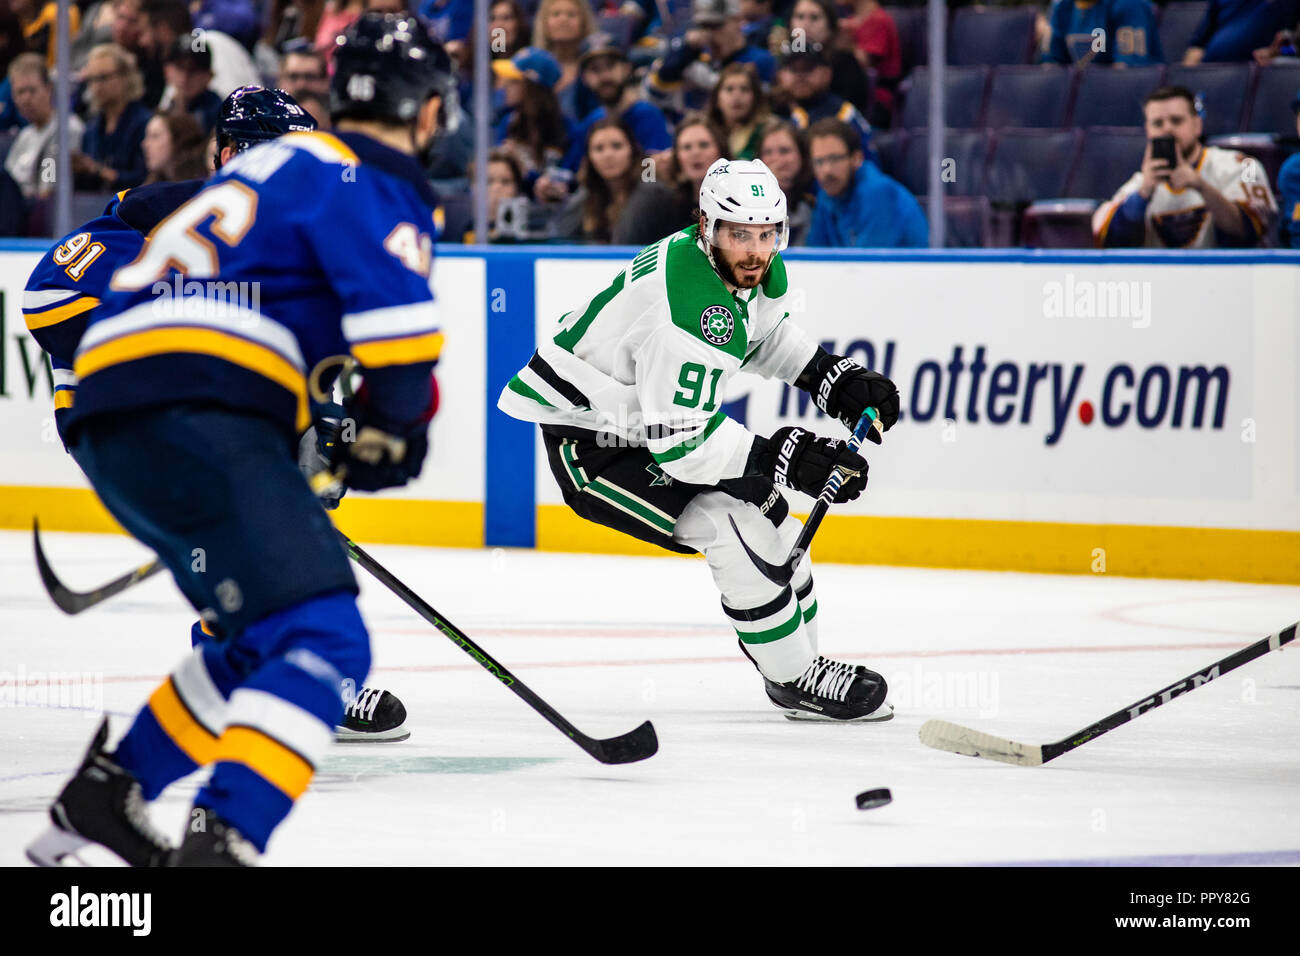 finest selection 53b18 659b4 St. Louis, USA. 28th Sept, 2018. NHL Pre-season: Dallas ...